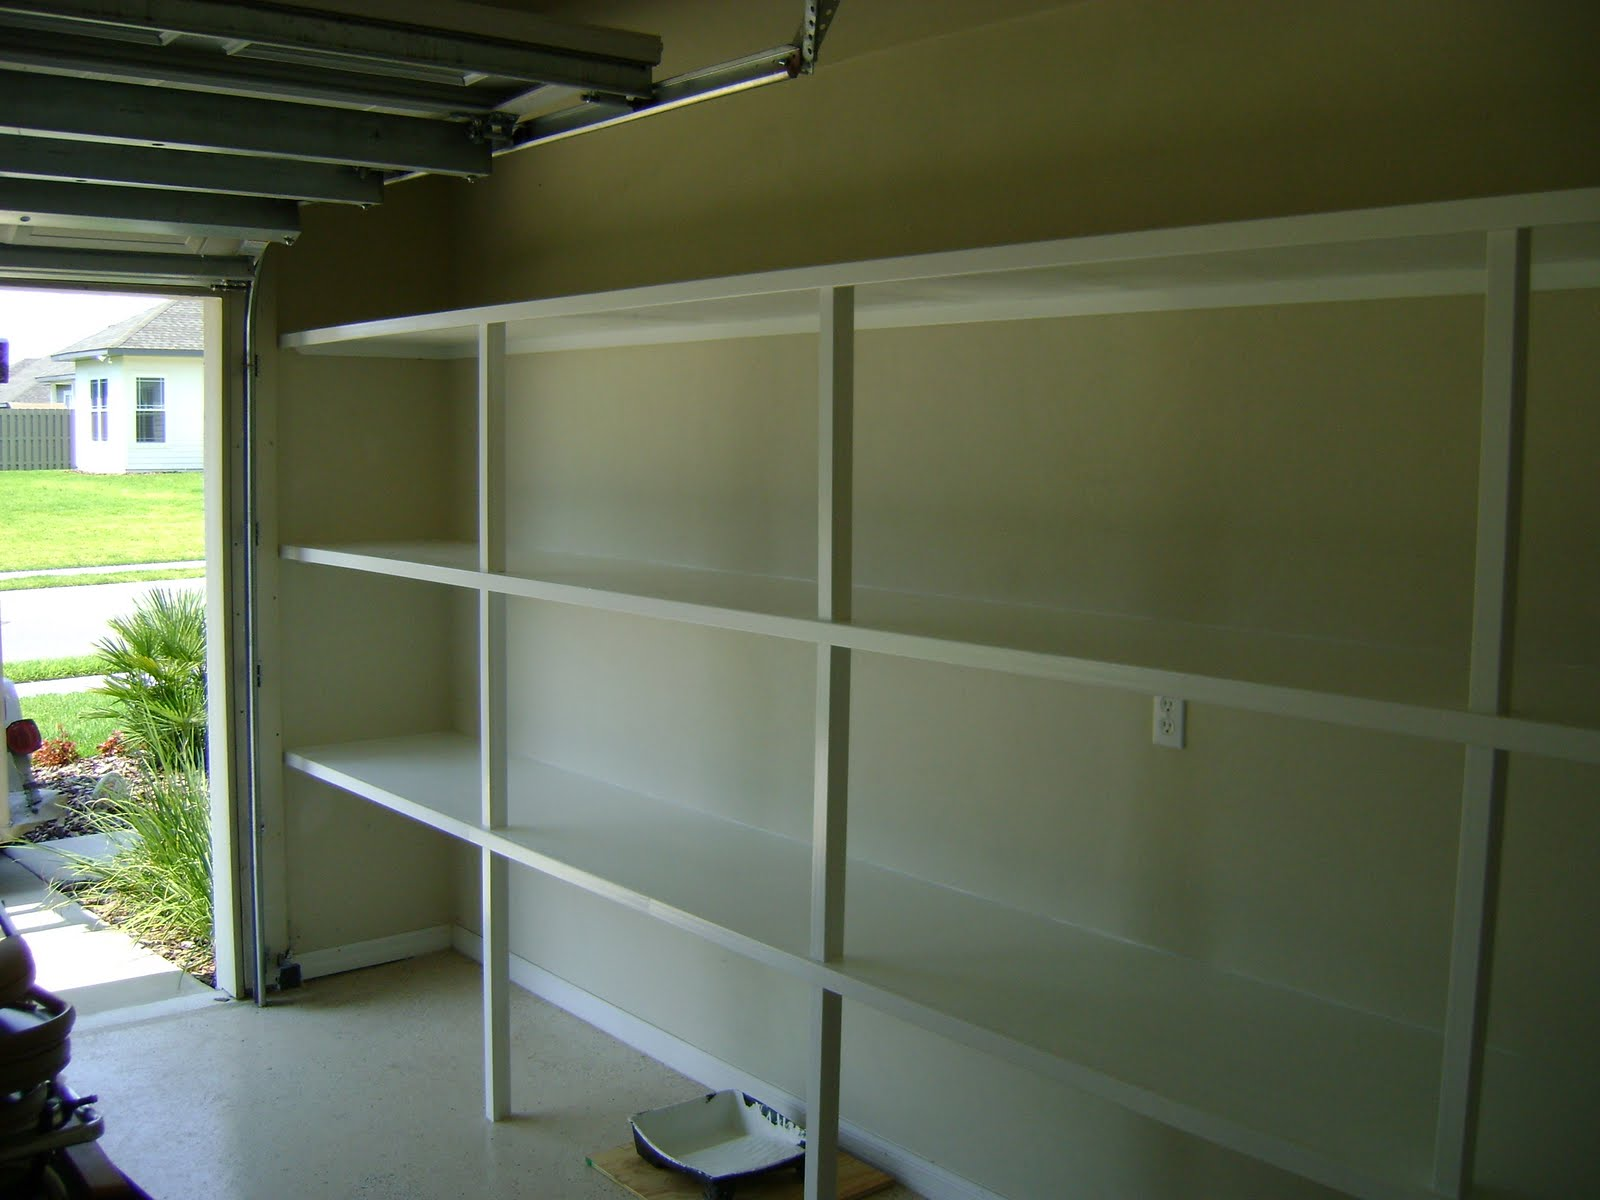 of done custom simply organized garage wall shelf by shelving img